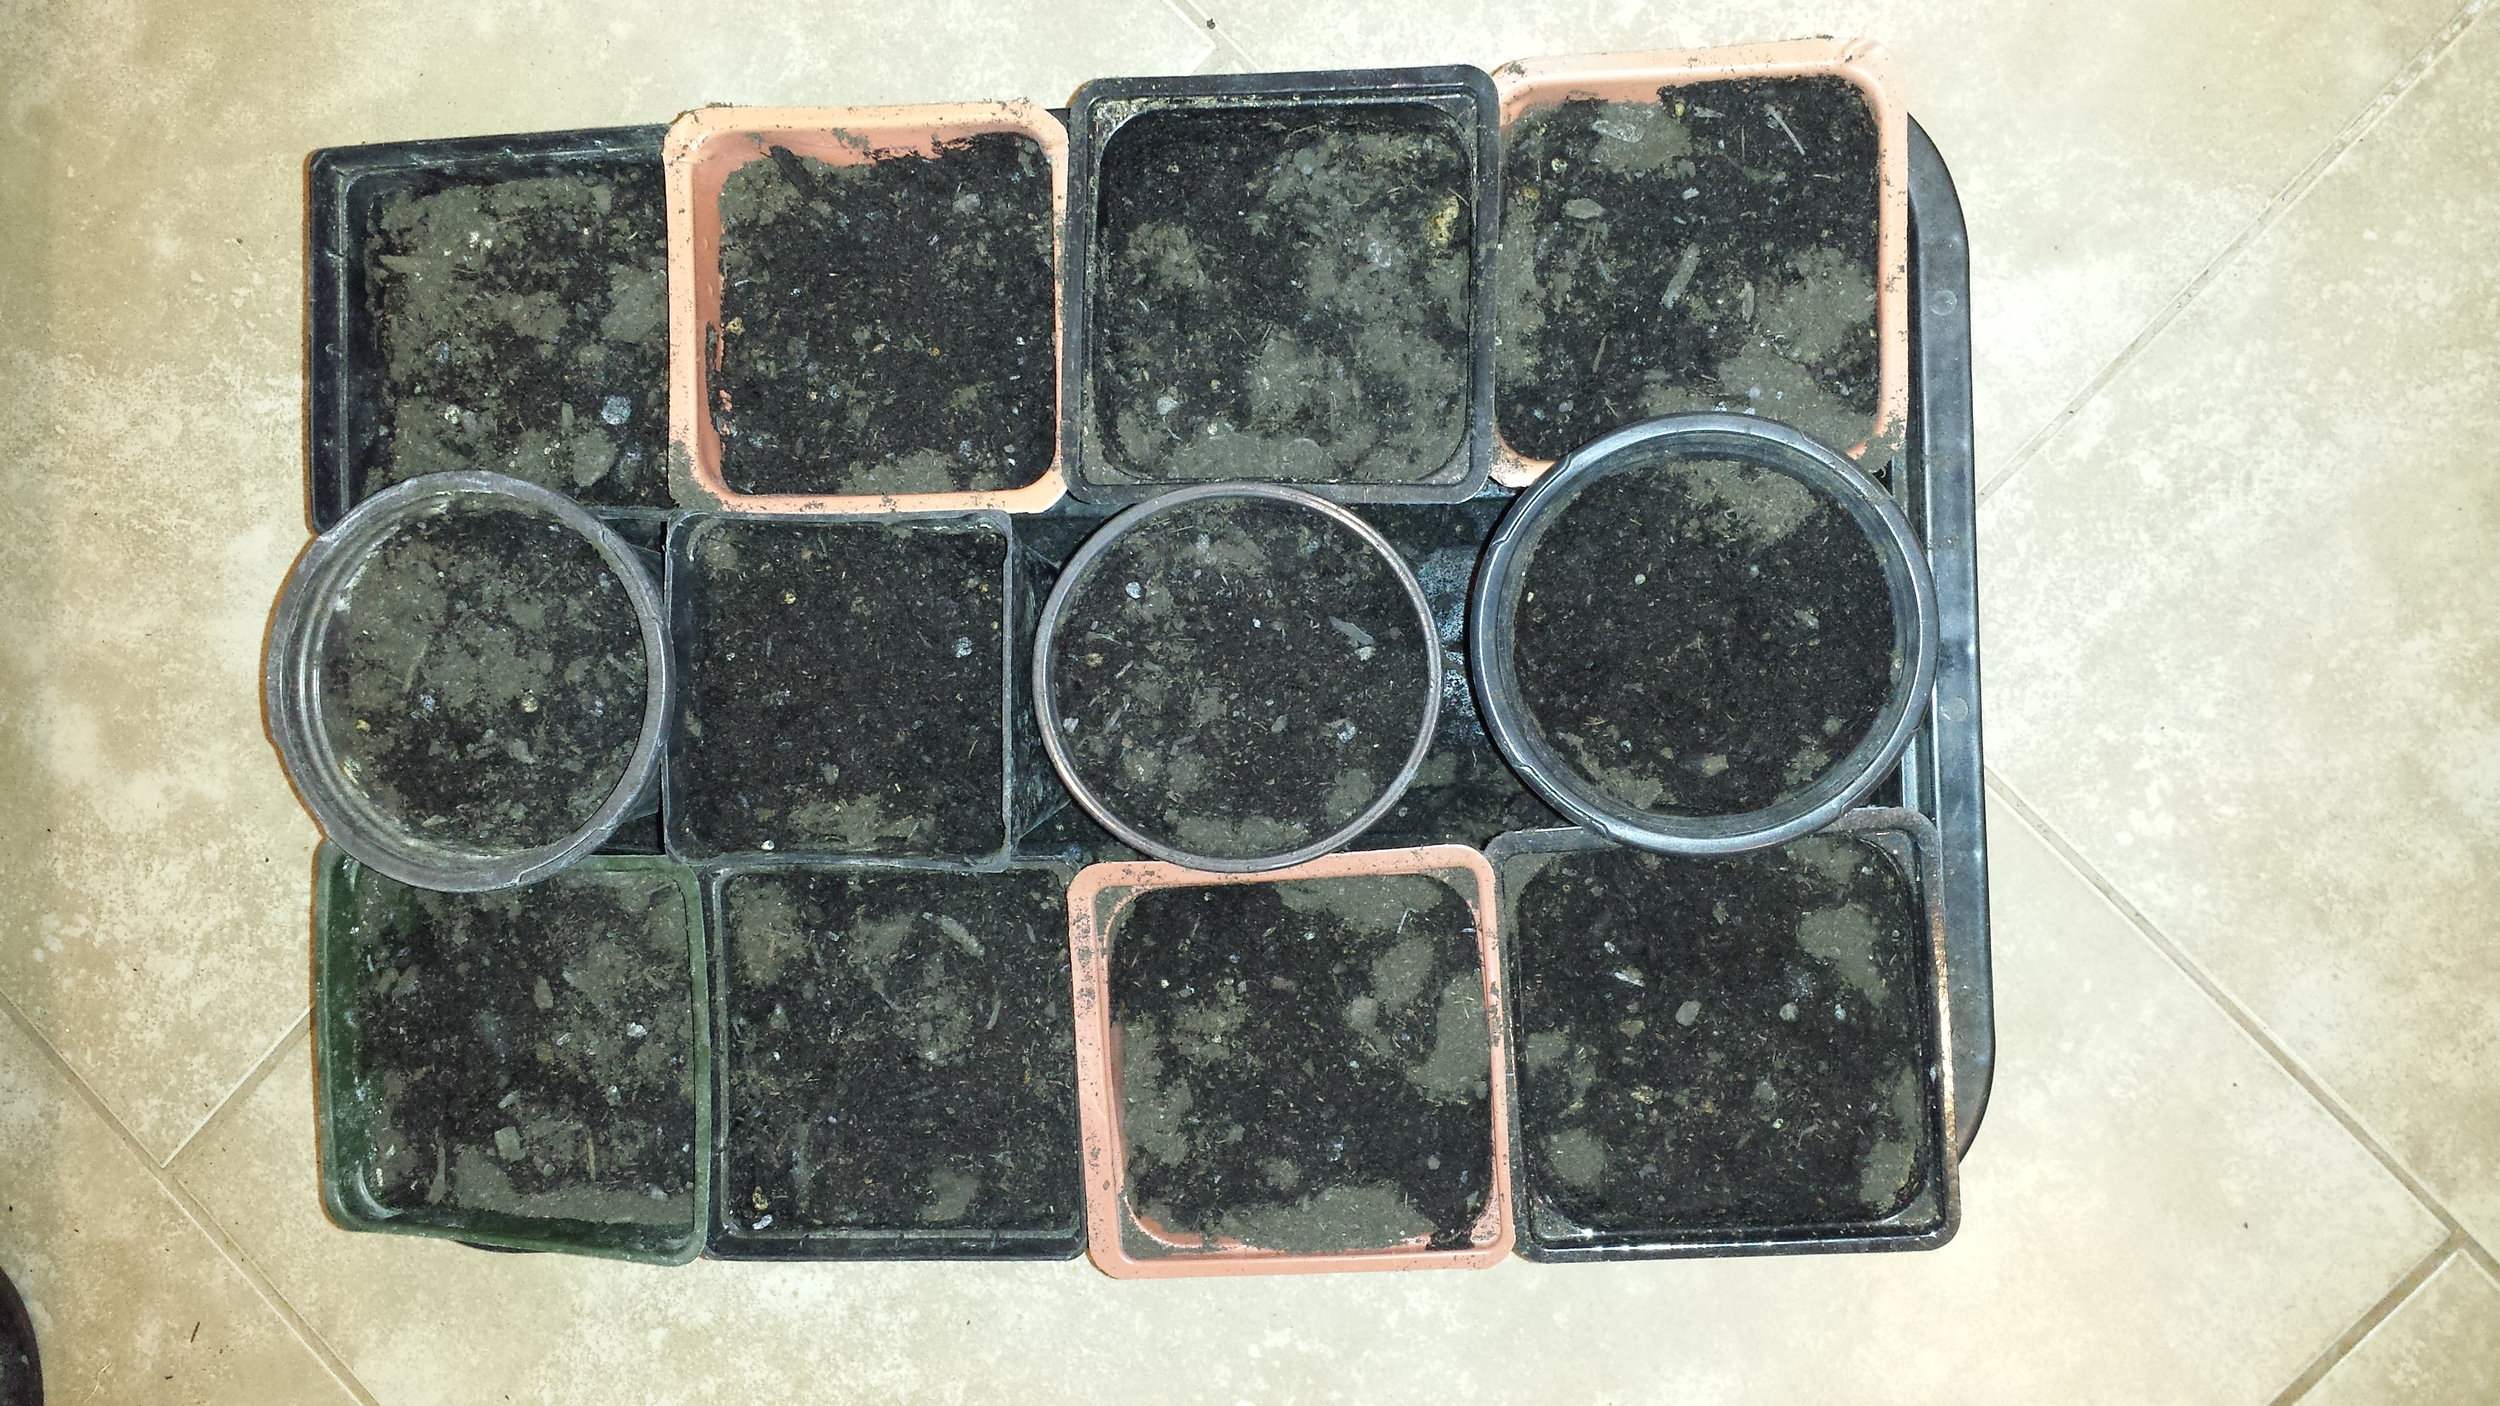 The square pots were a little bigger than the standard 4 inchers, so they each hold 4 seeds, while the pots in the middle all hold 2-3 seeds each. This is a tray of approximately 40 seeds right here!